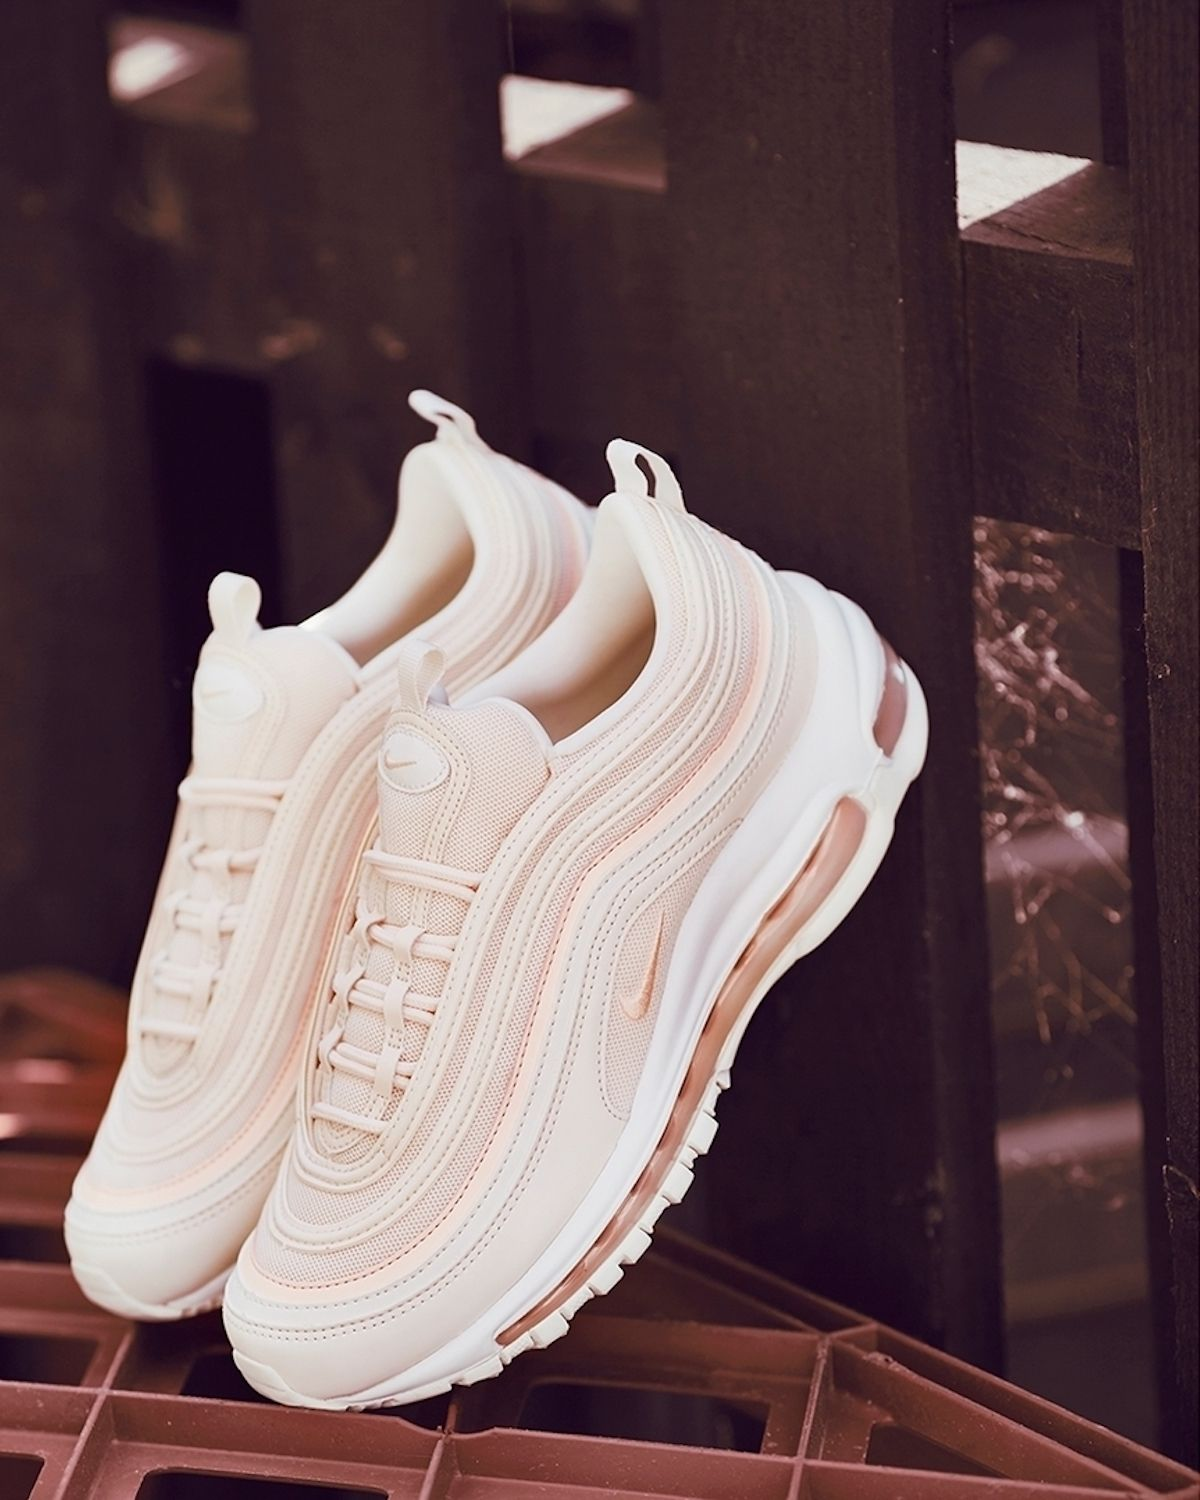 great fit 165d9 d9151 Our most stylish shoe of the month award goes to this new Nike Air Max 97  OG shoe in pink and white. It ranks as our favourite Nike Air Max 97 OG ...